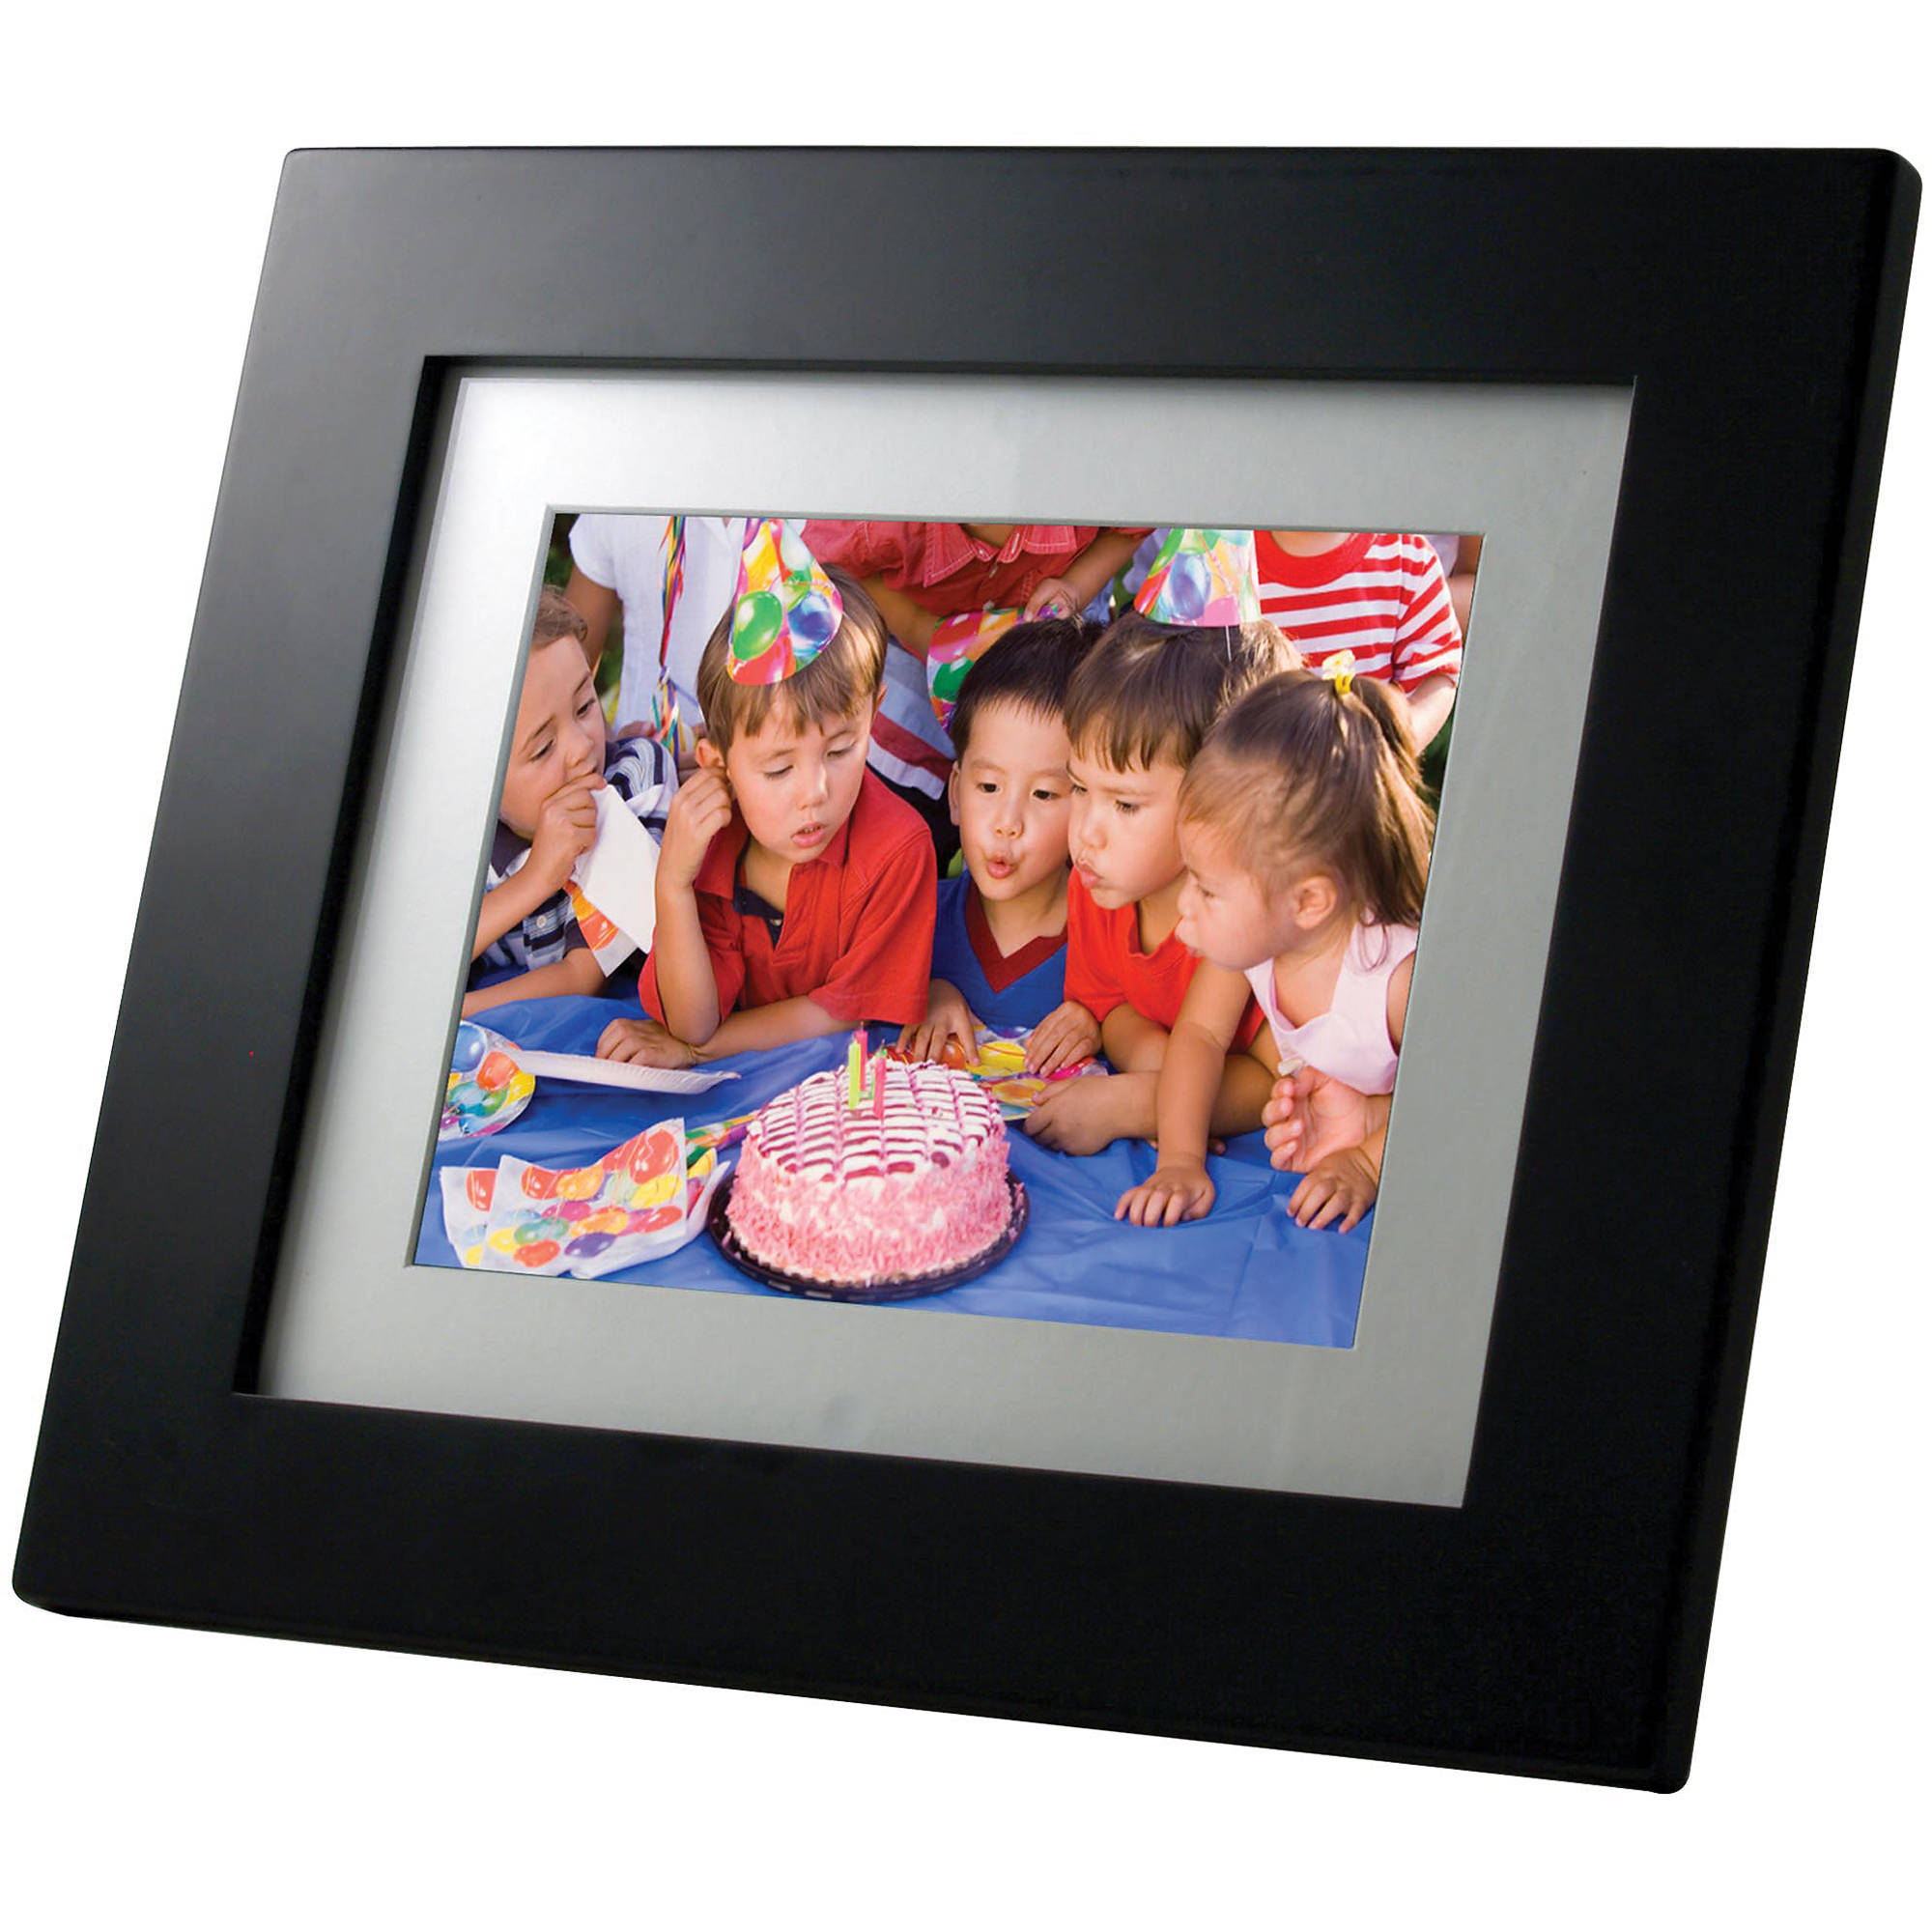 Pandigital 120 Lcd Digital Photo Frame Pan1251 Bh Photo